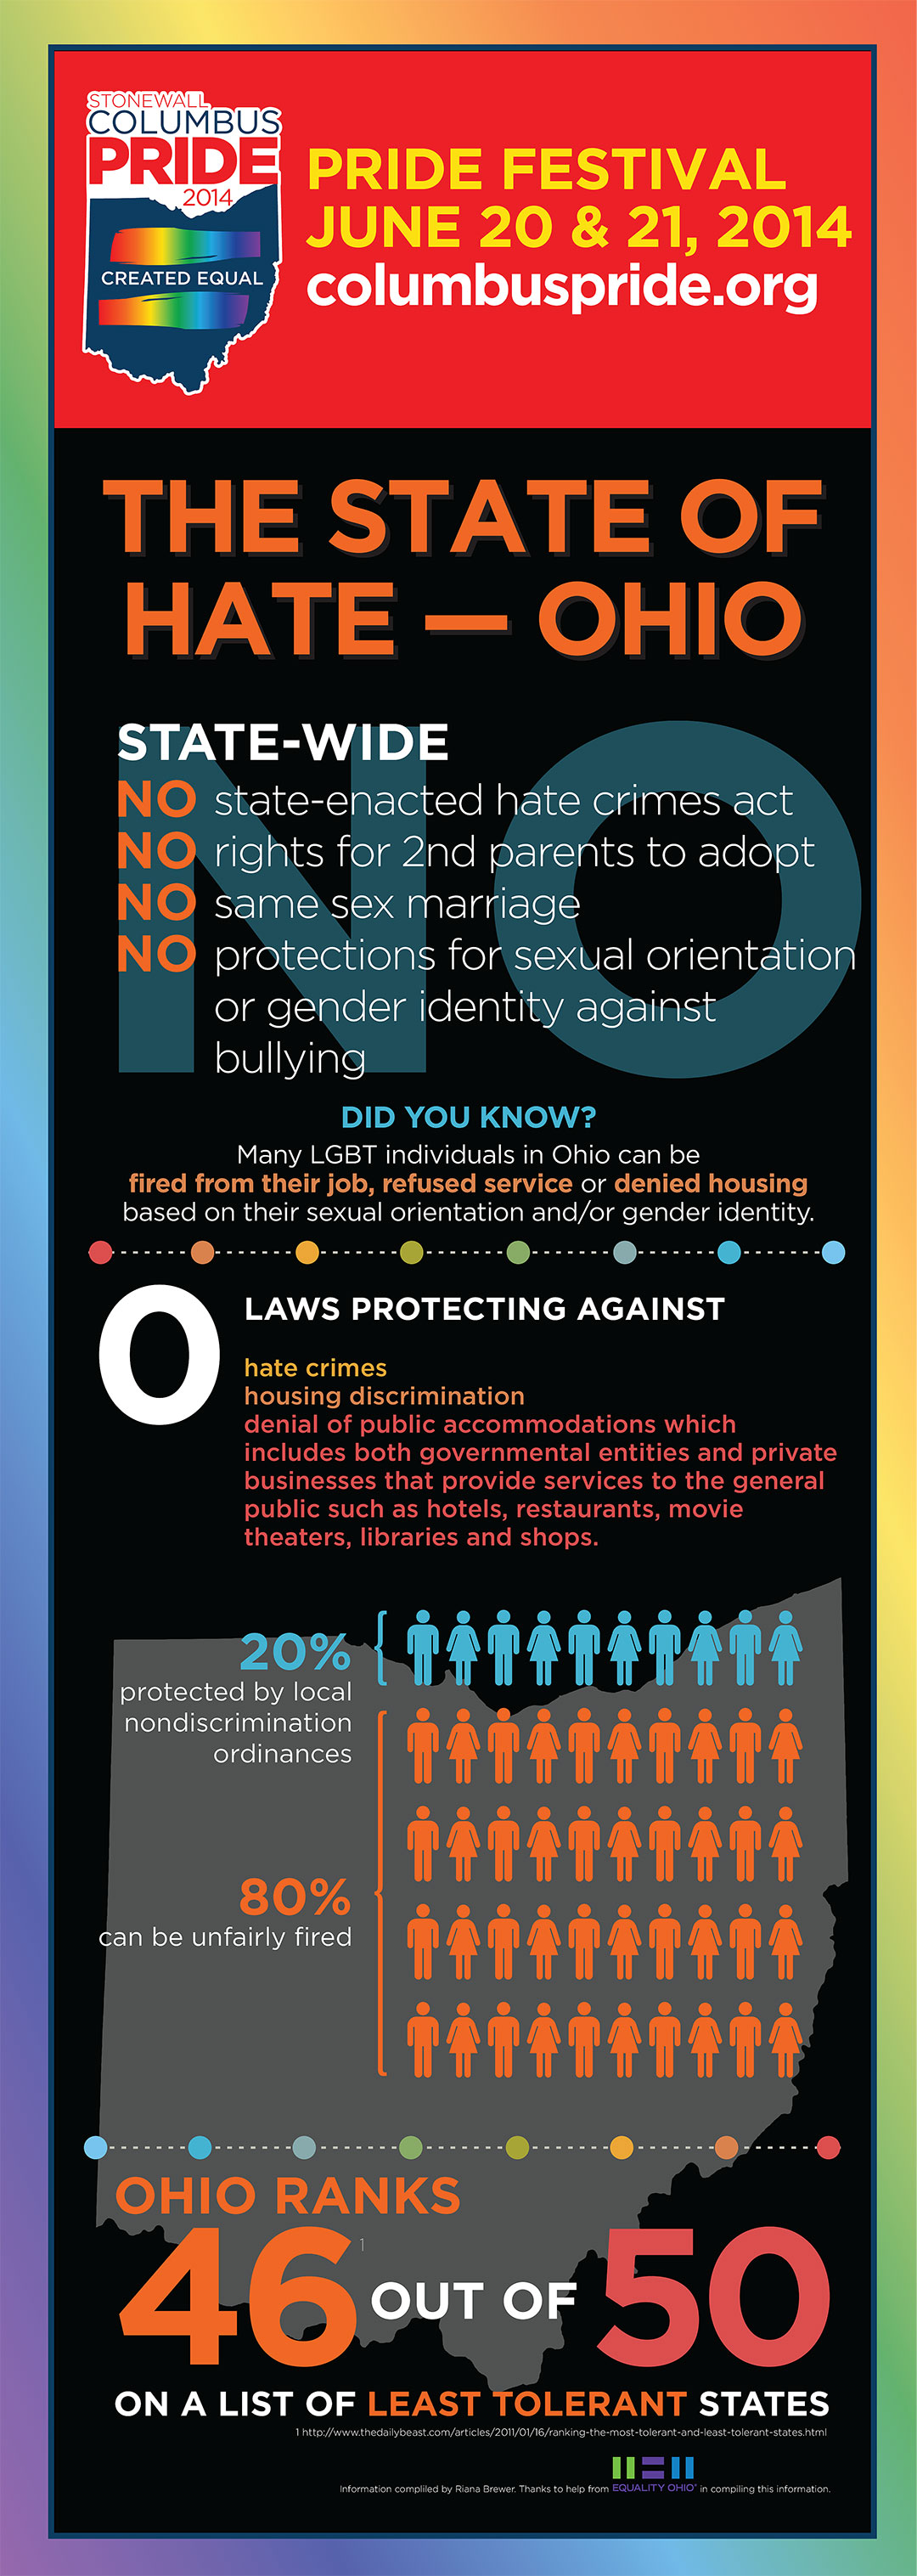 Stonewall Columbus Pride 2014: Hate in Ohio Infographic